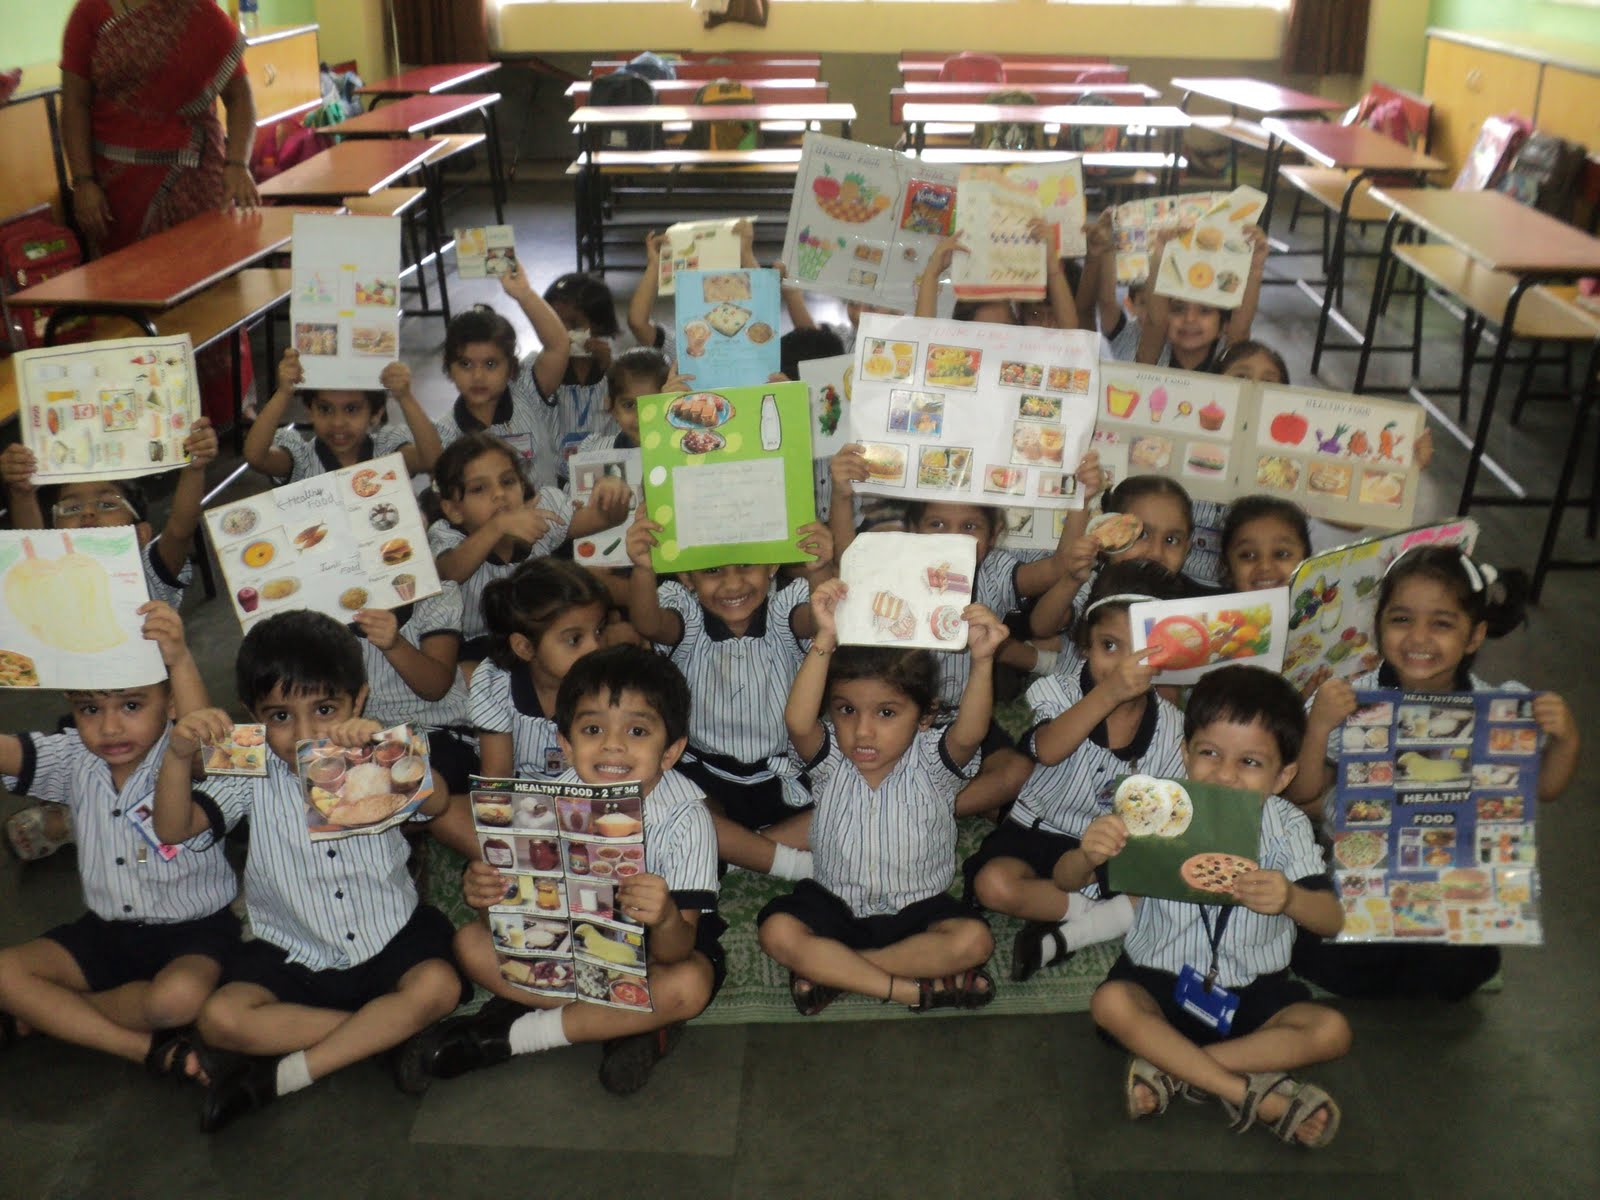 The Rustomjee Cambridge Diaries Show And Tell Healthy And Junk Food